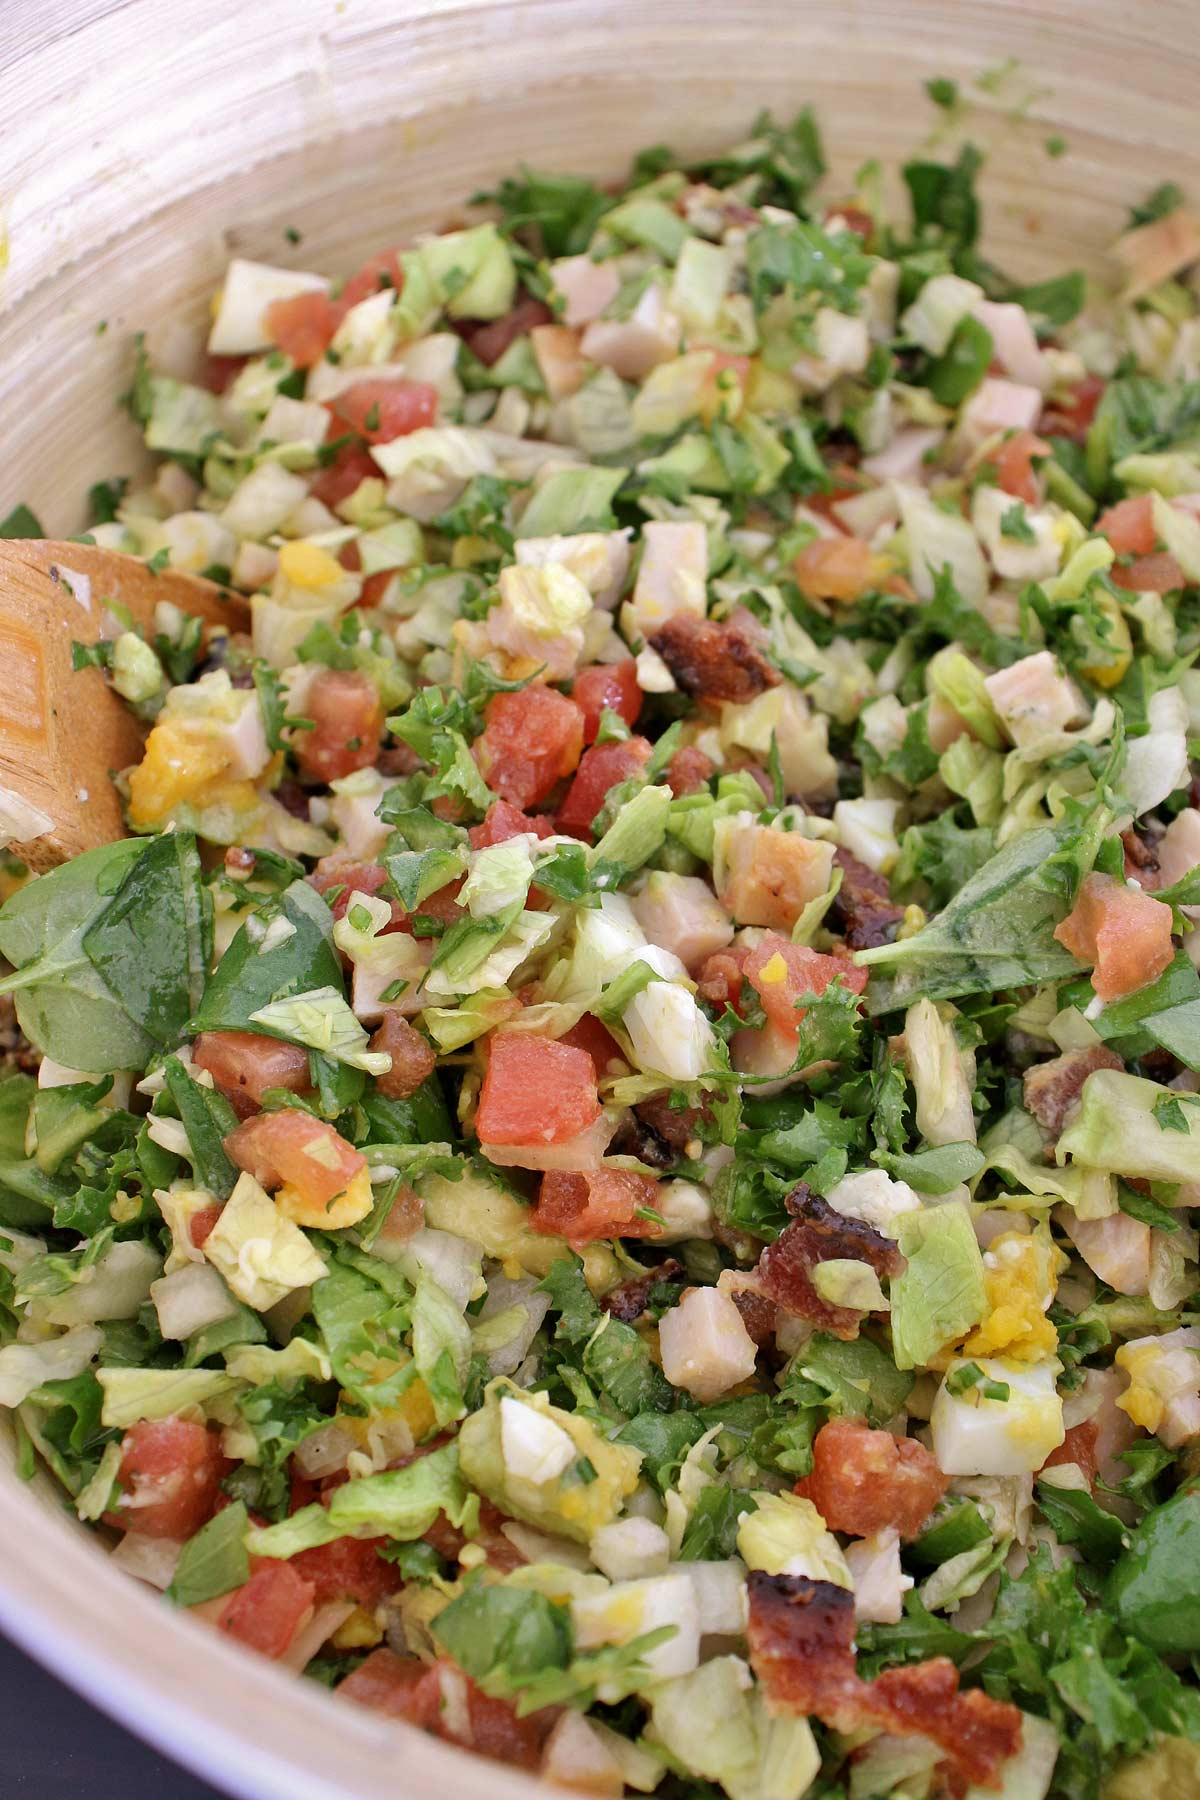 Closeup of tossed Cobb Salad in a wooden mixing bowl.